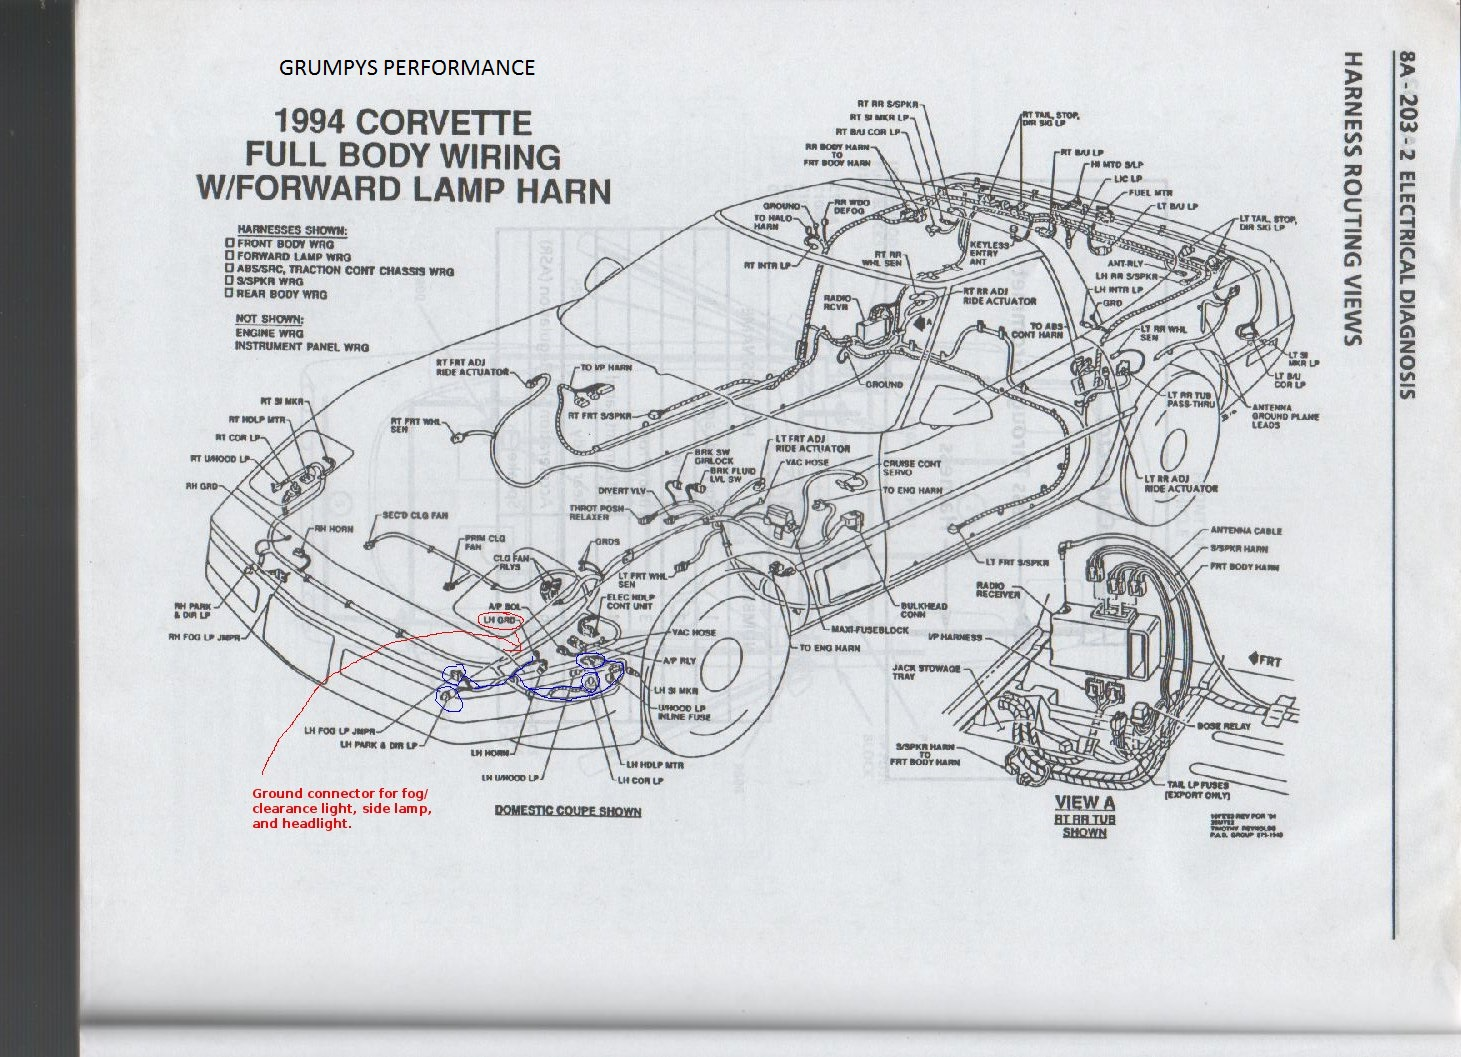 1999 corvette wiring diagram gb 0883  c5 corvette wiring diagram download diagram  gb 0883  c5 corvette wiring diagram